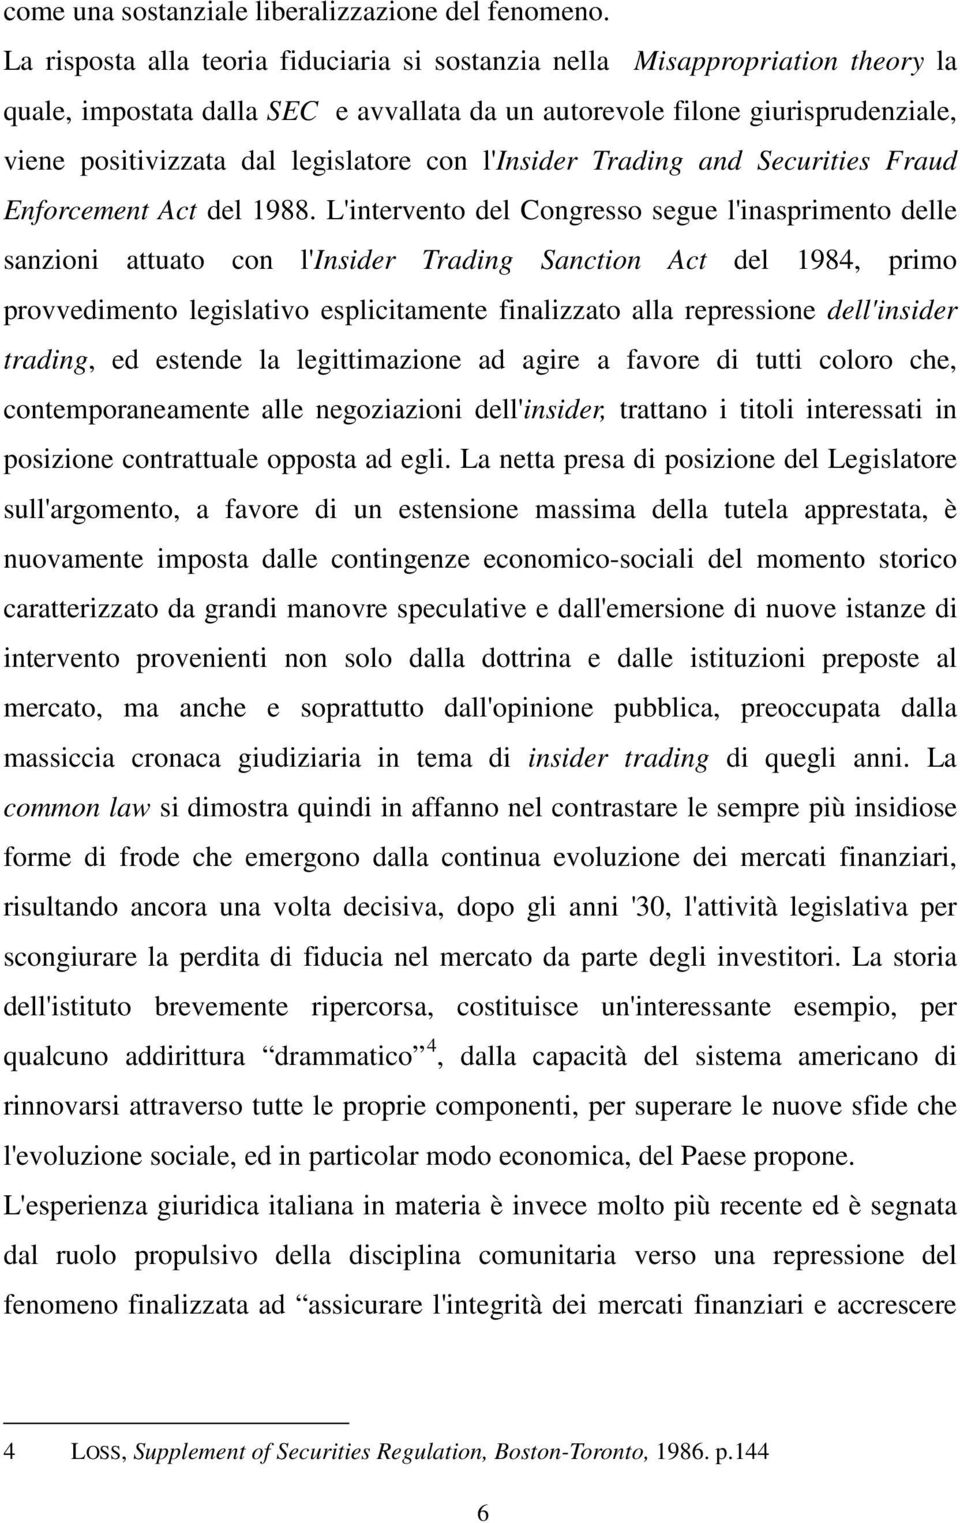 con l'insider Trading and Securities Fraud Enforcement Act del 1988.